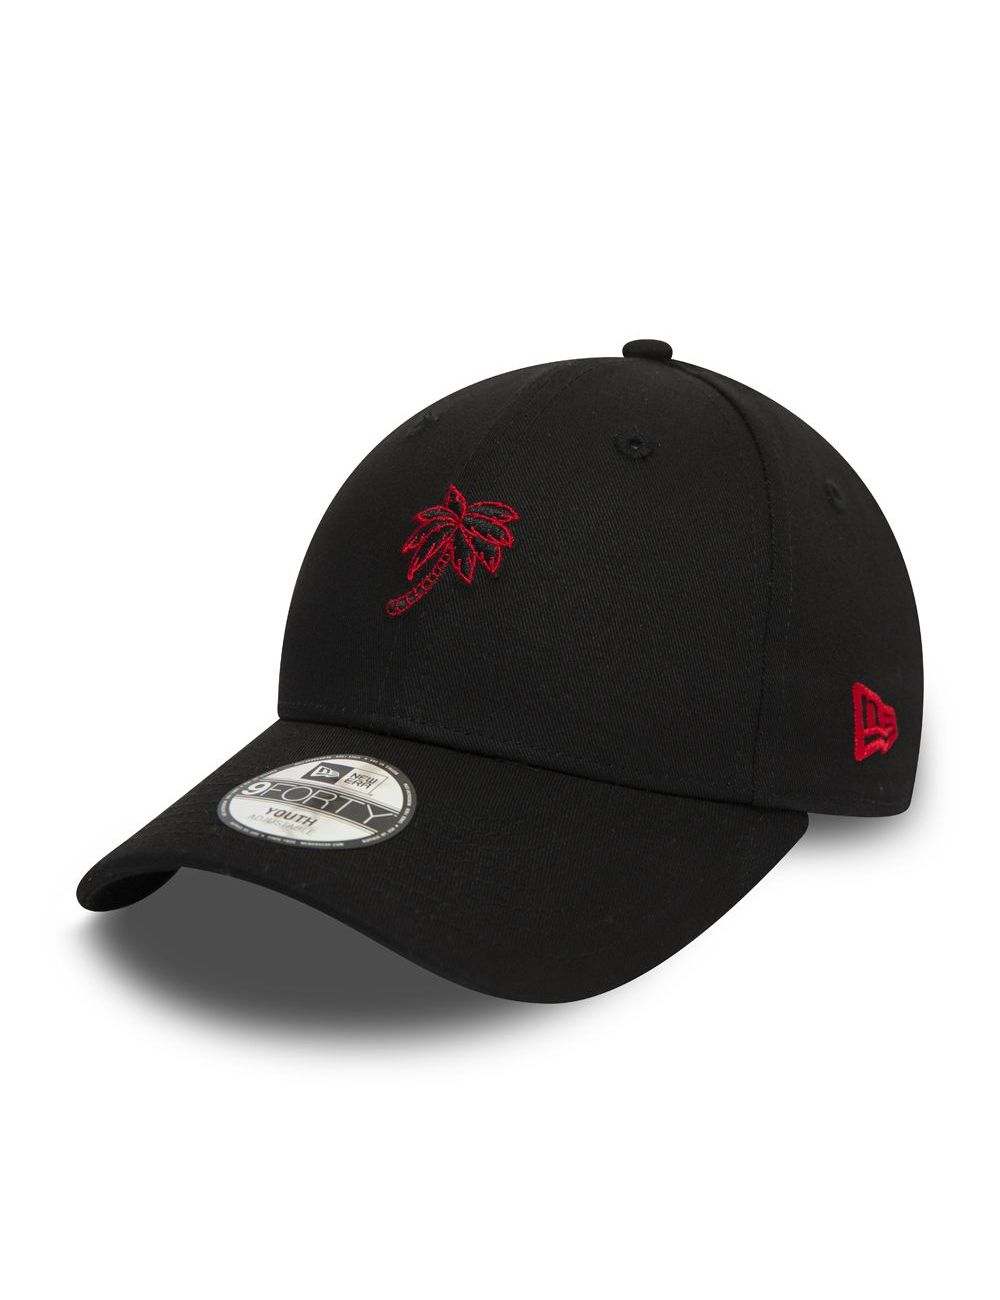 Casquette enfant/youth 9FORTY Soucoupe